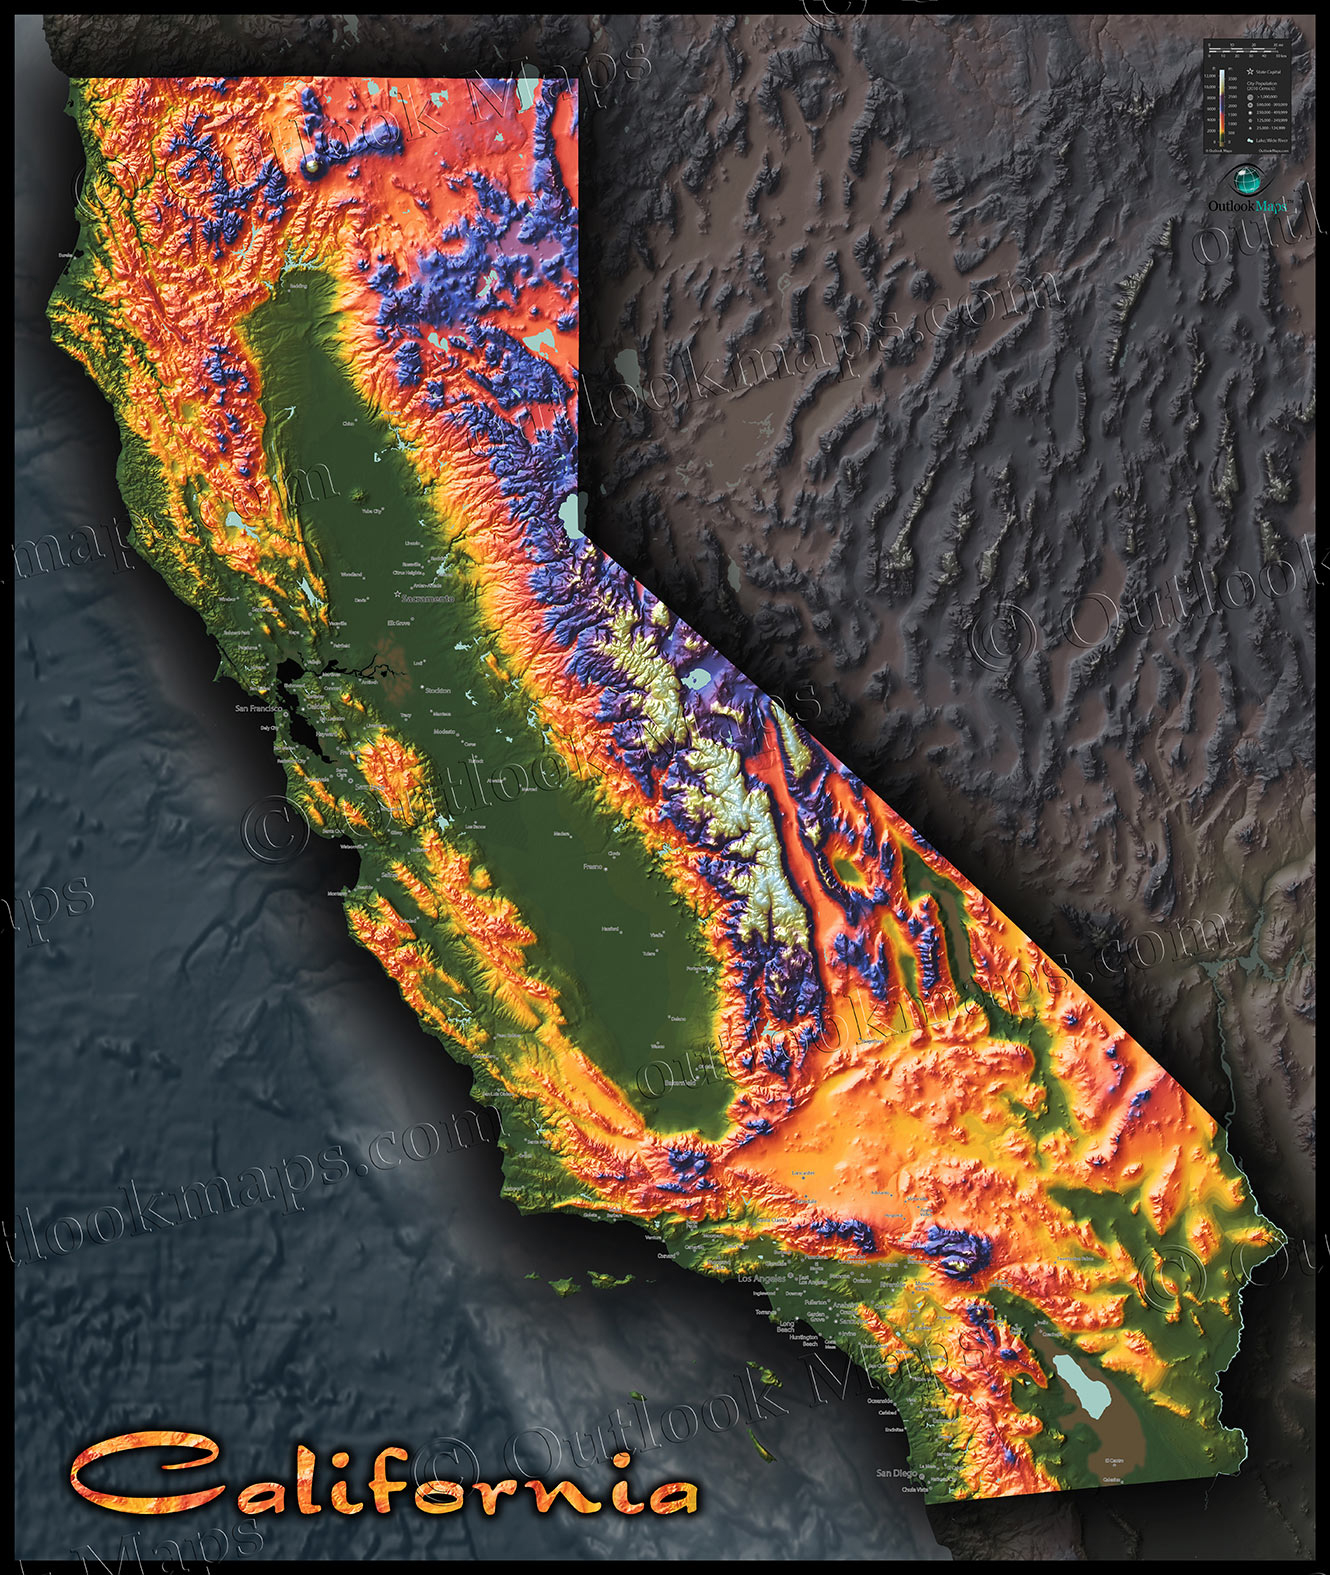 Colorful California Map | Topographical Physical Landscape - California Elevation Map